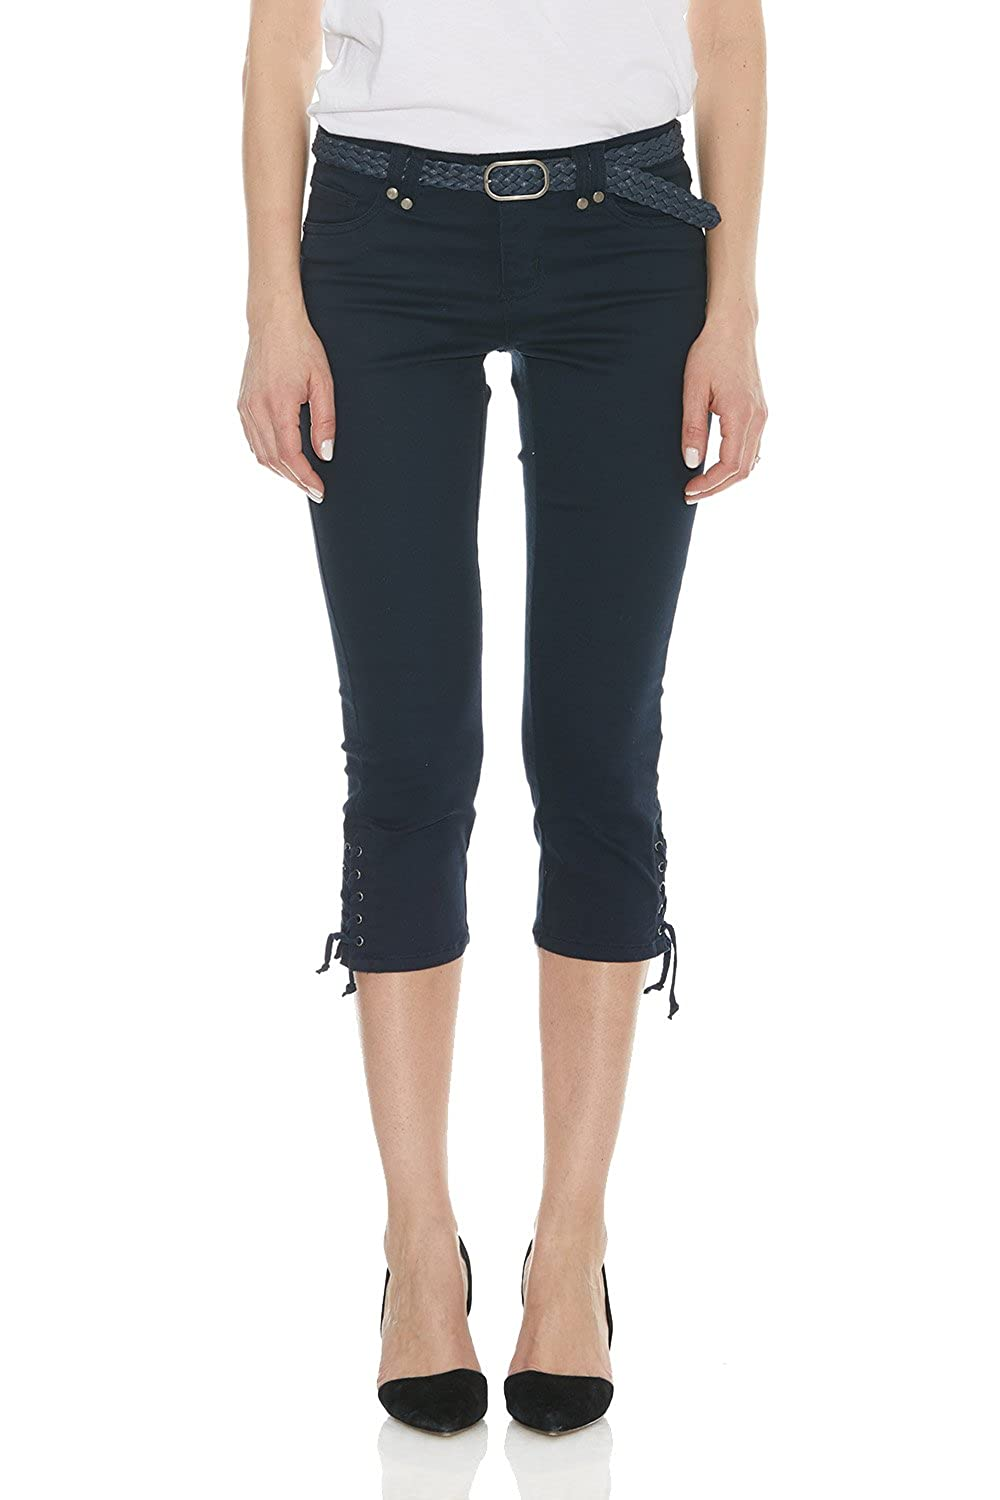 12520abe38 Suko Jeans Women s Capri Pants - Power Stretch - Flattering - Braided Belt  at Amazon Women s Clothing store